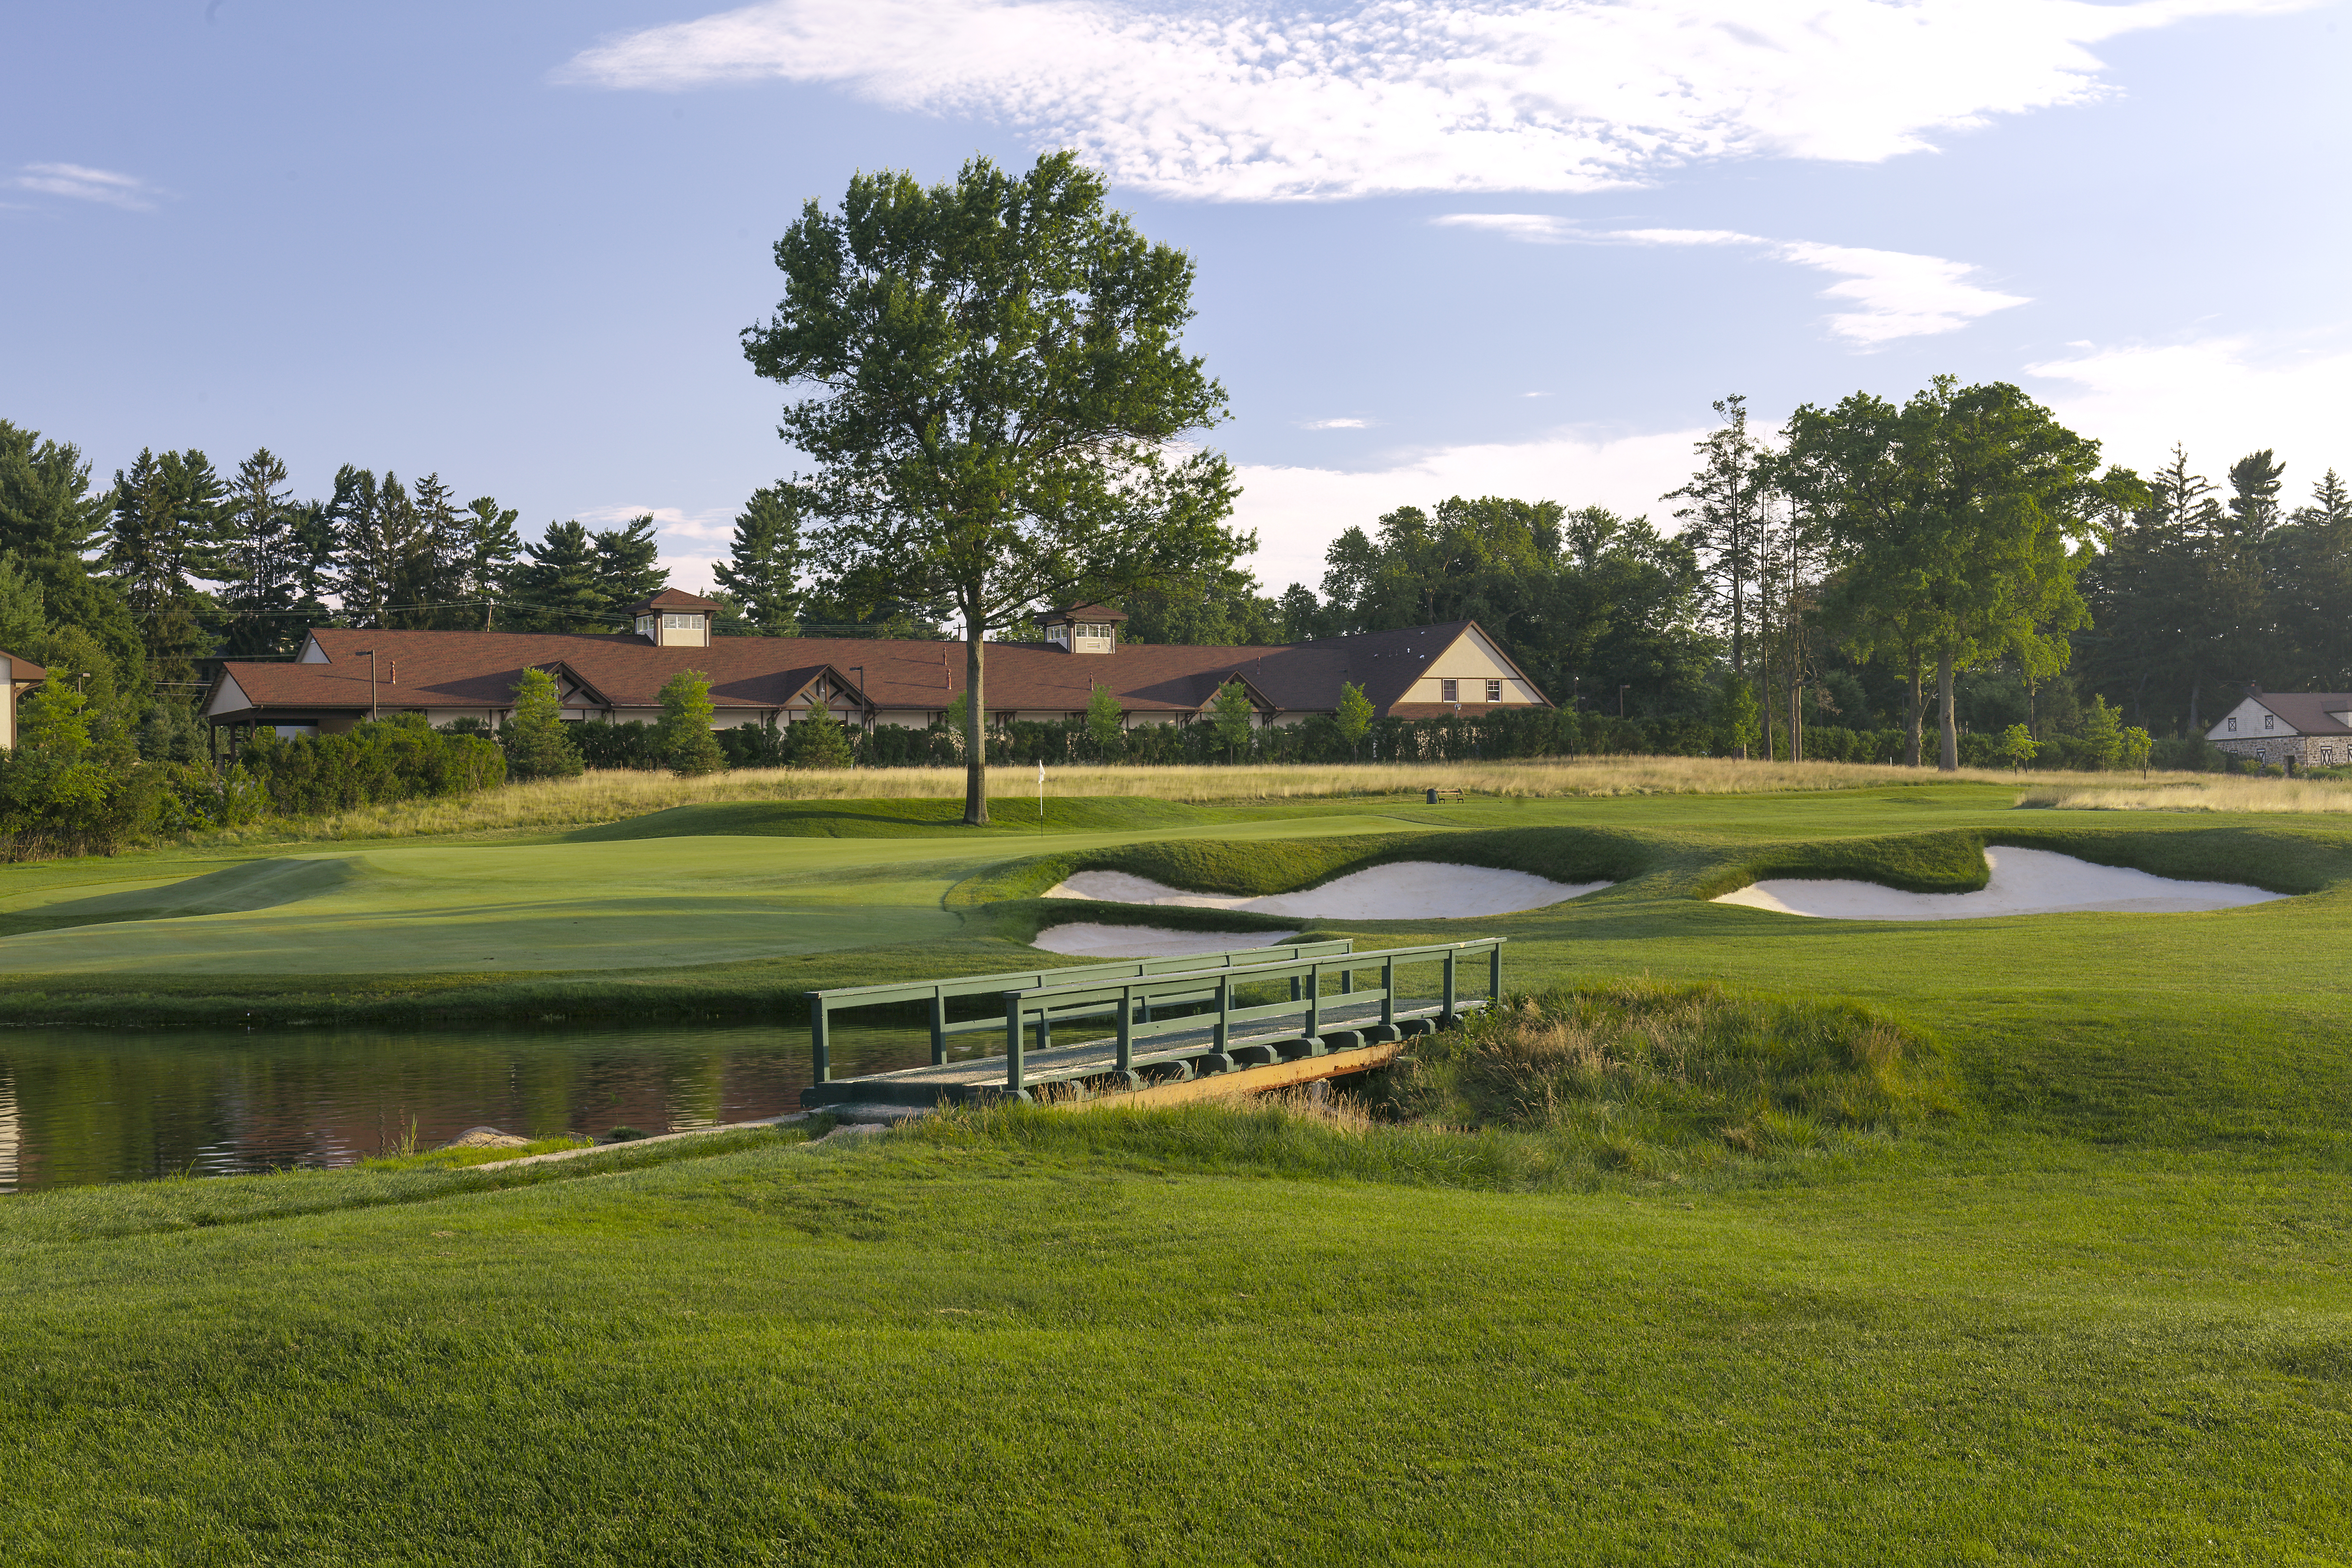 Aronimink Golf Club 17.1